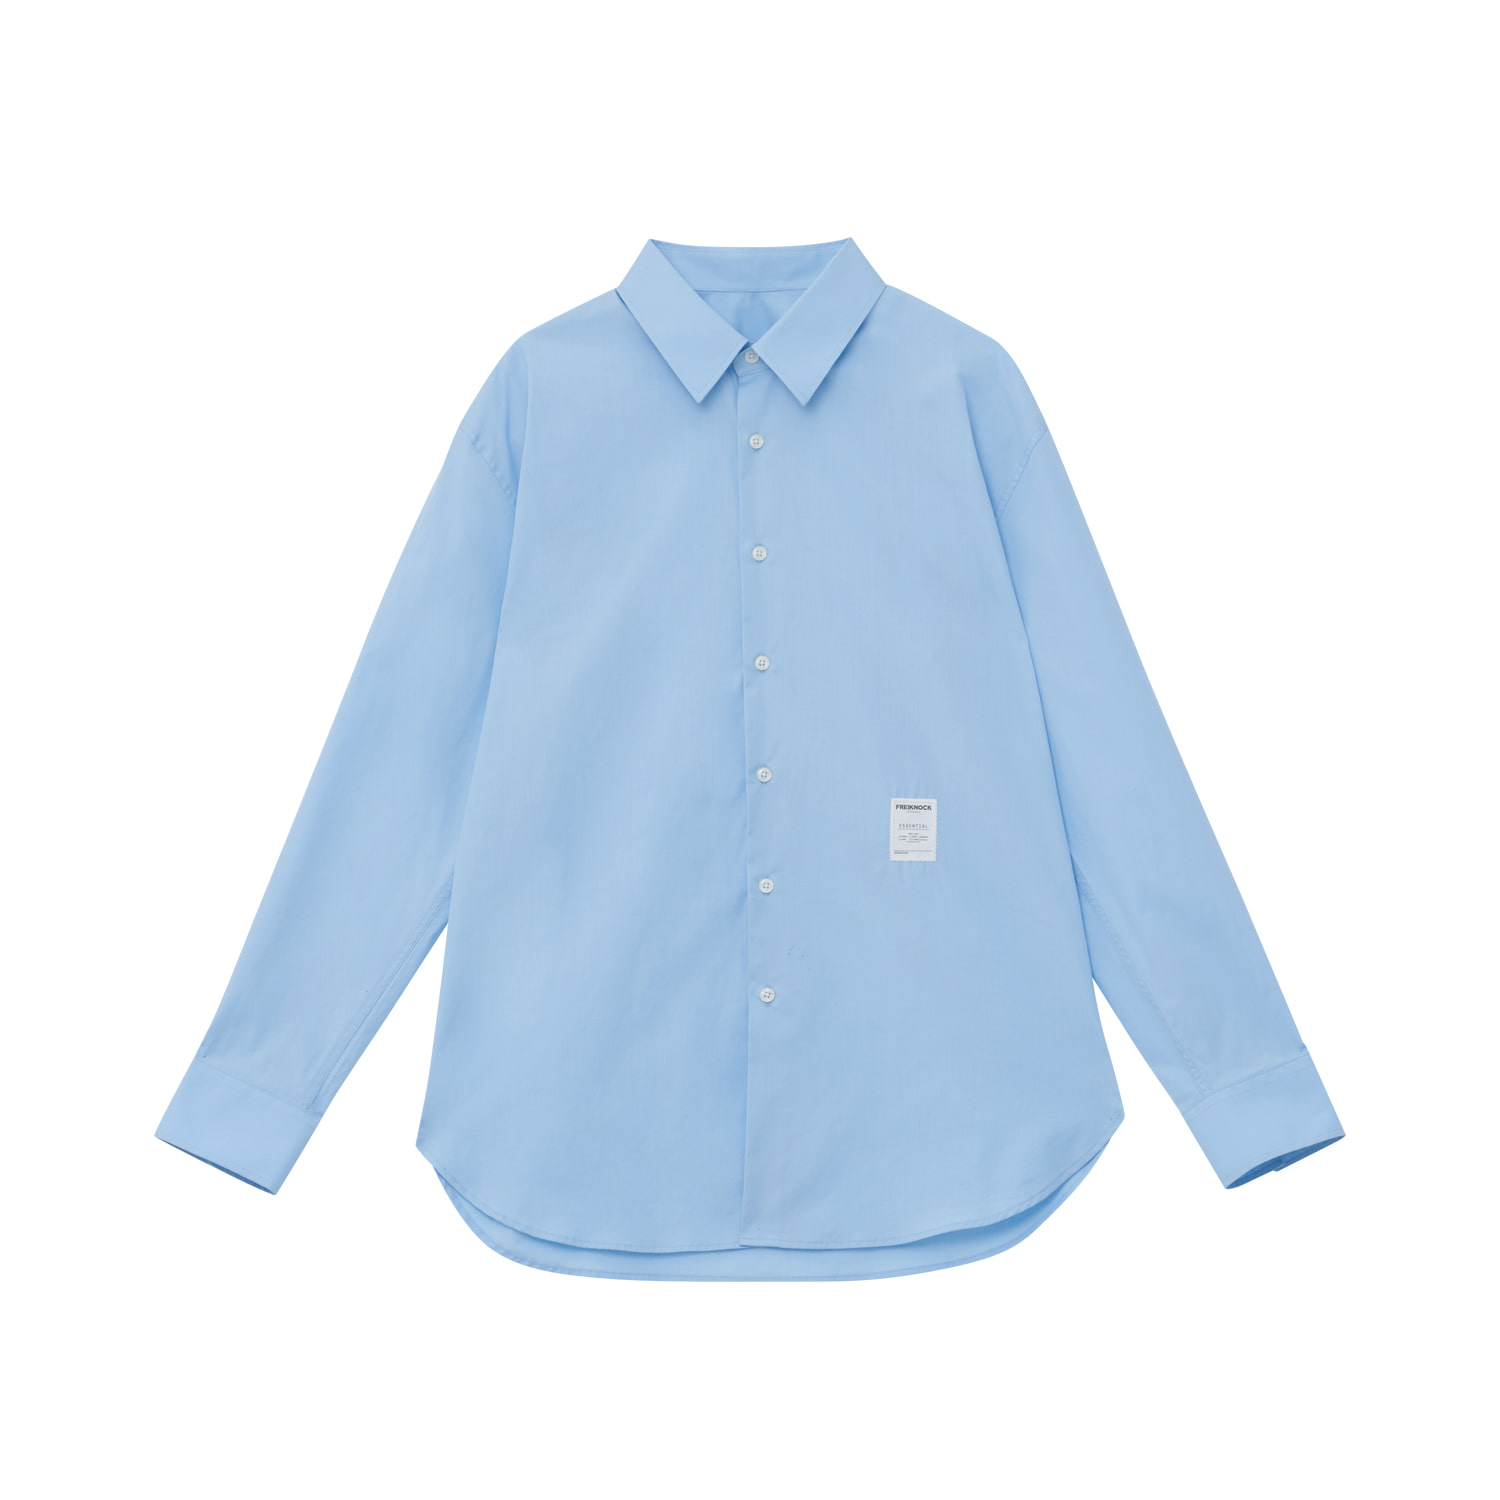 ESSENTIAL SHIRT Vol.1(BLUE)